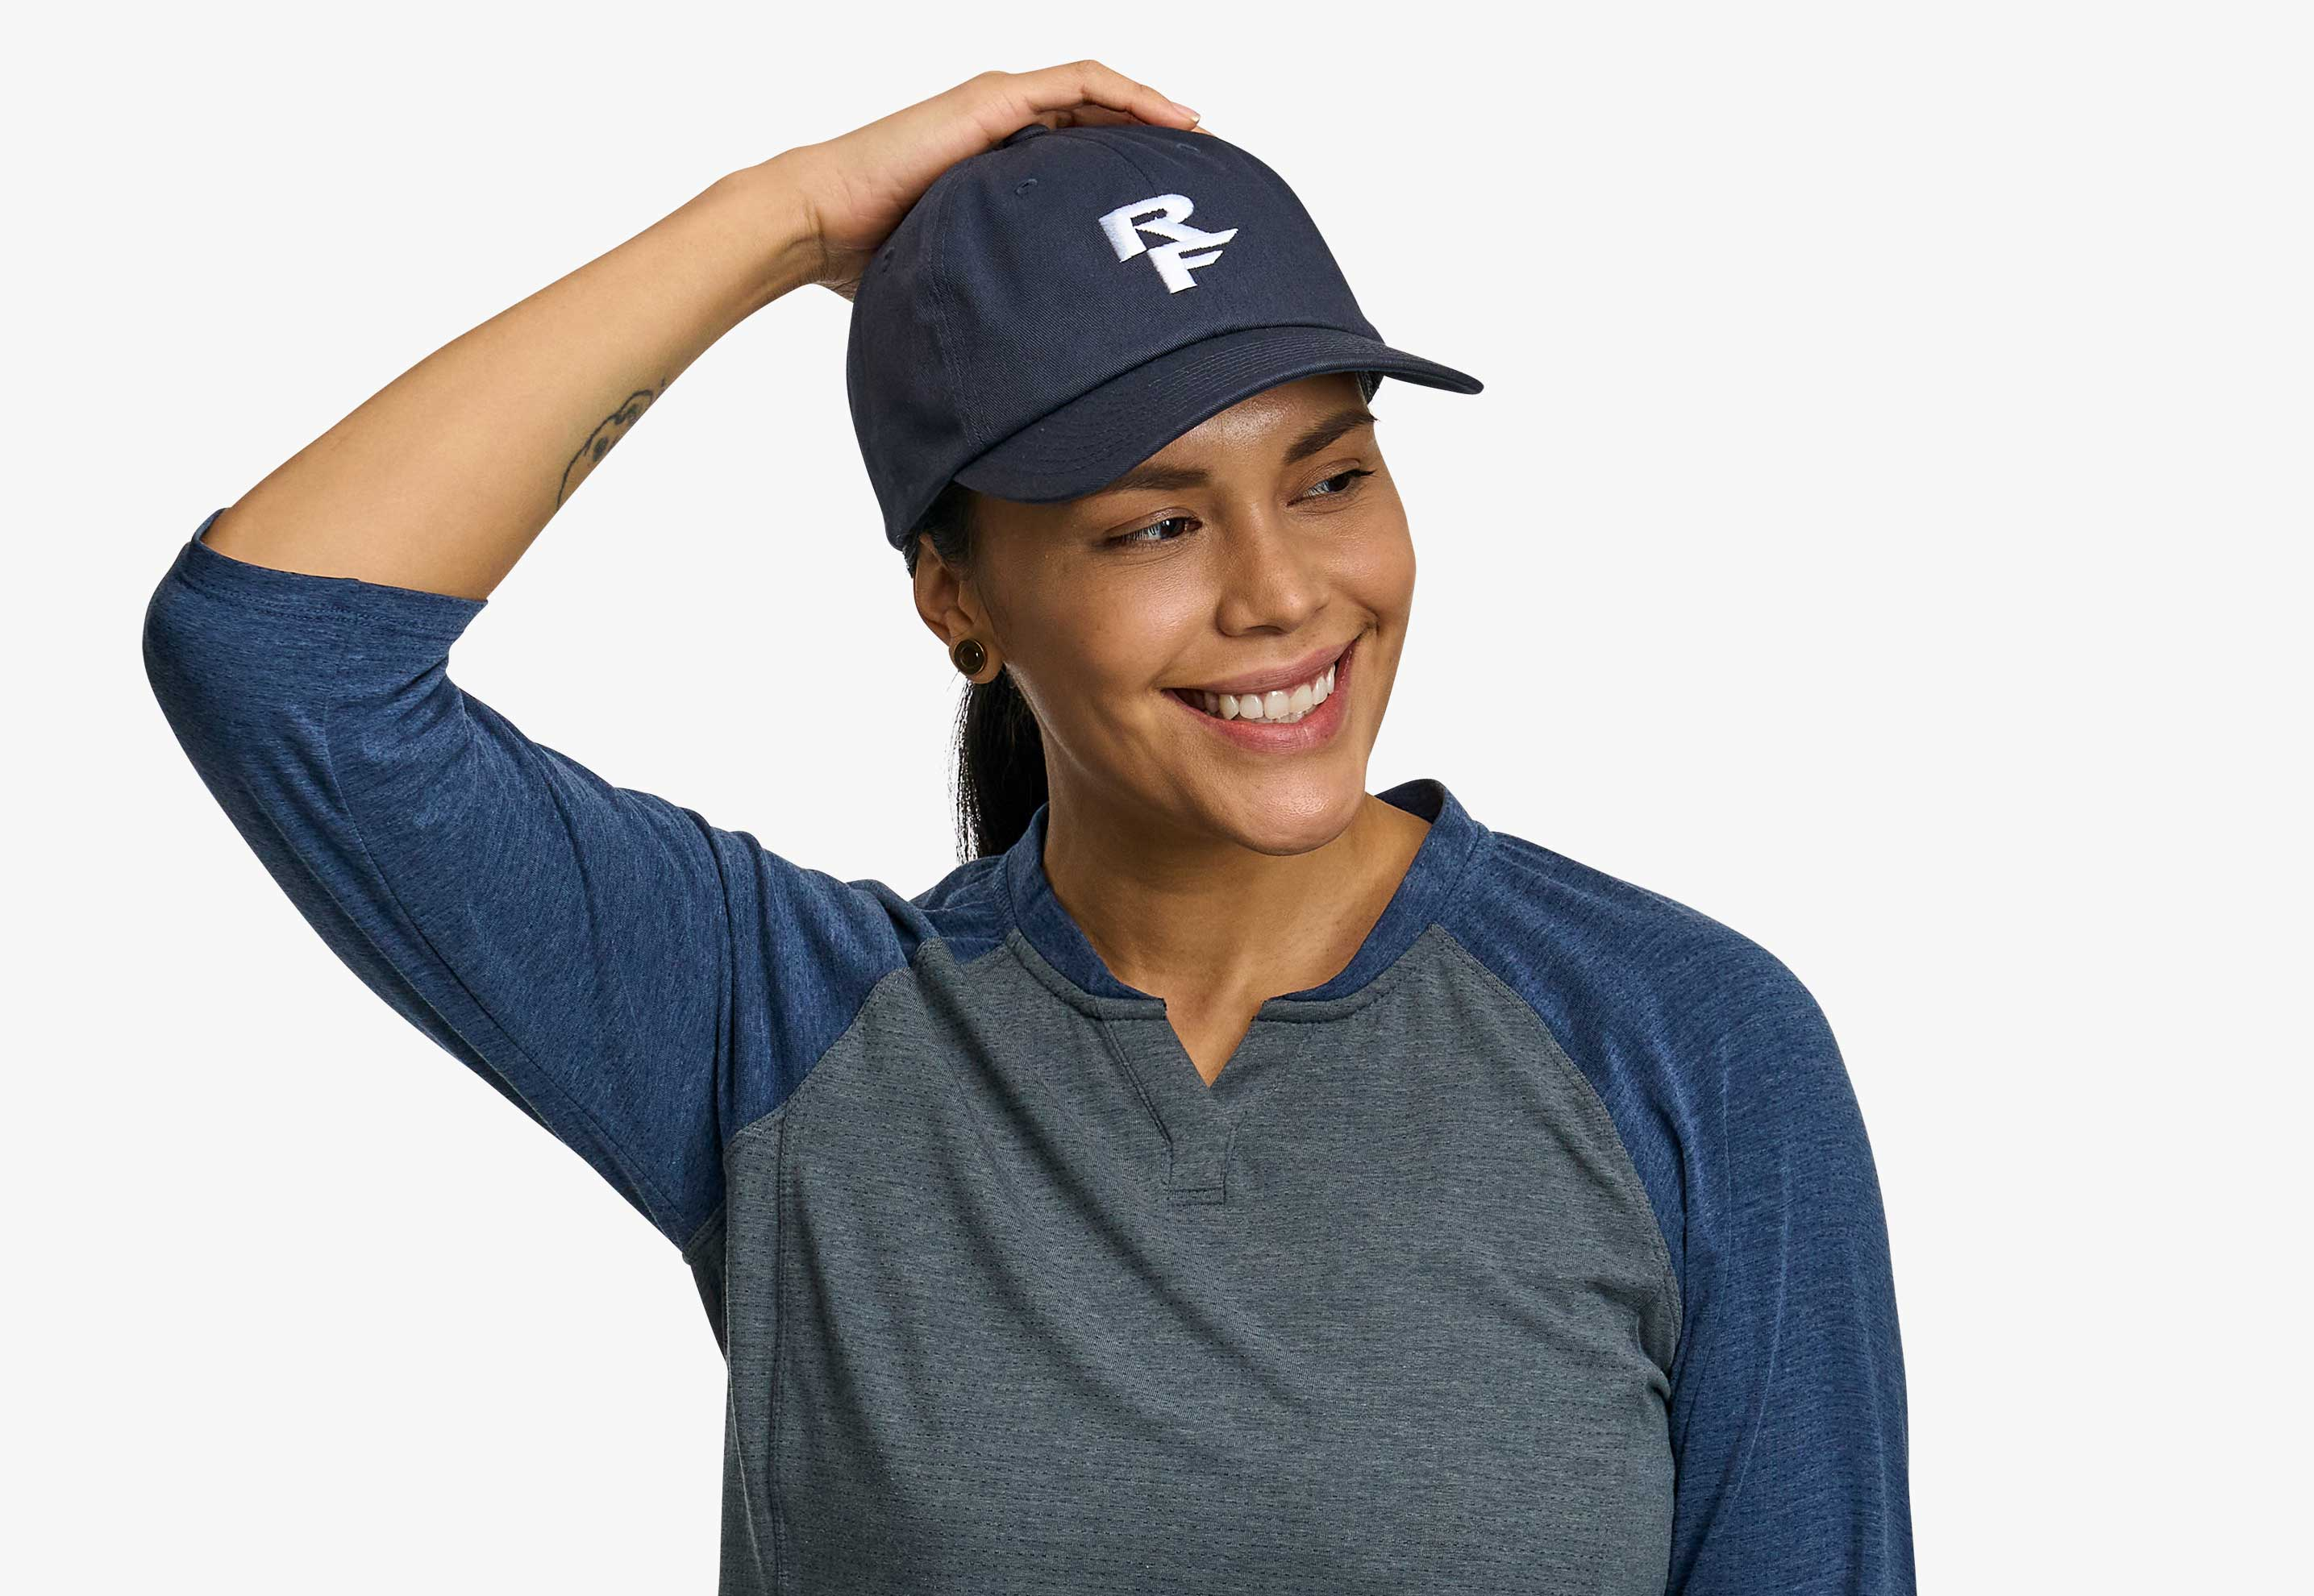 The Dad Hat